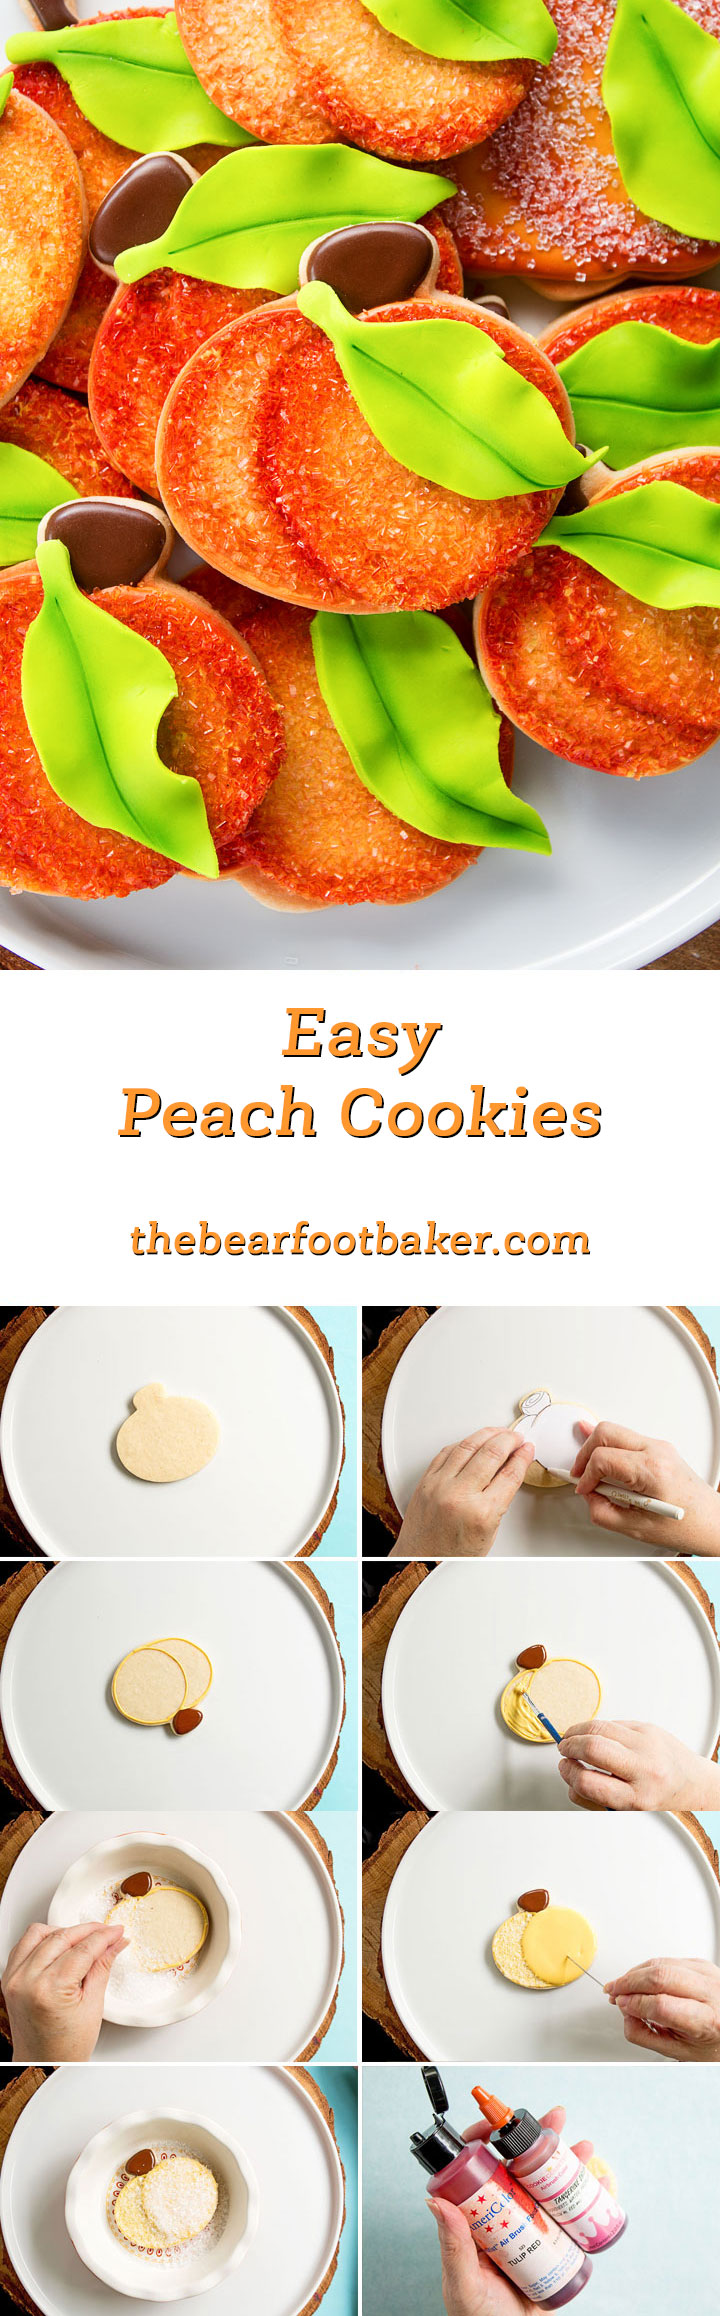 How to Make Easy Peach Cookies | The Bearfoot Baker